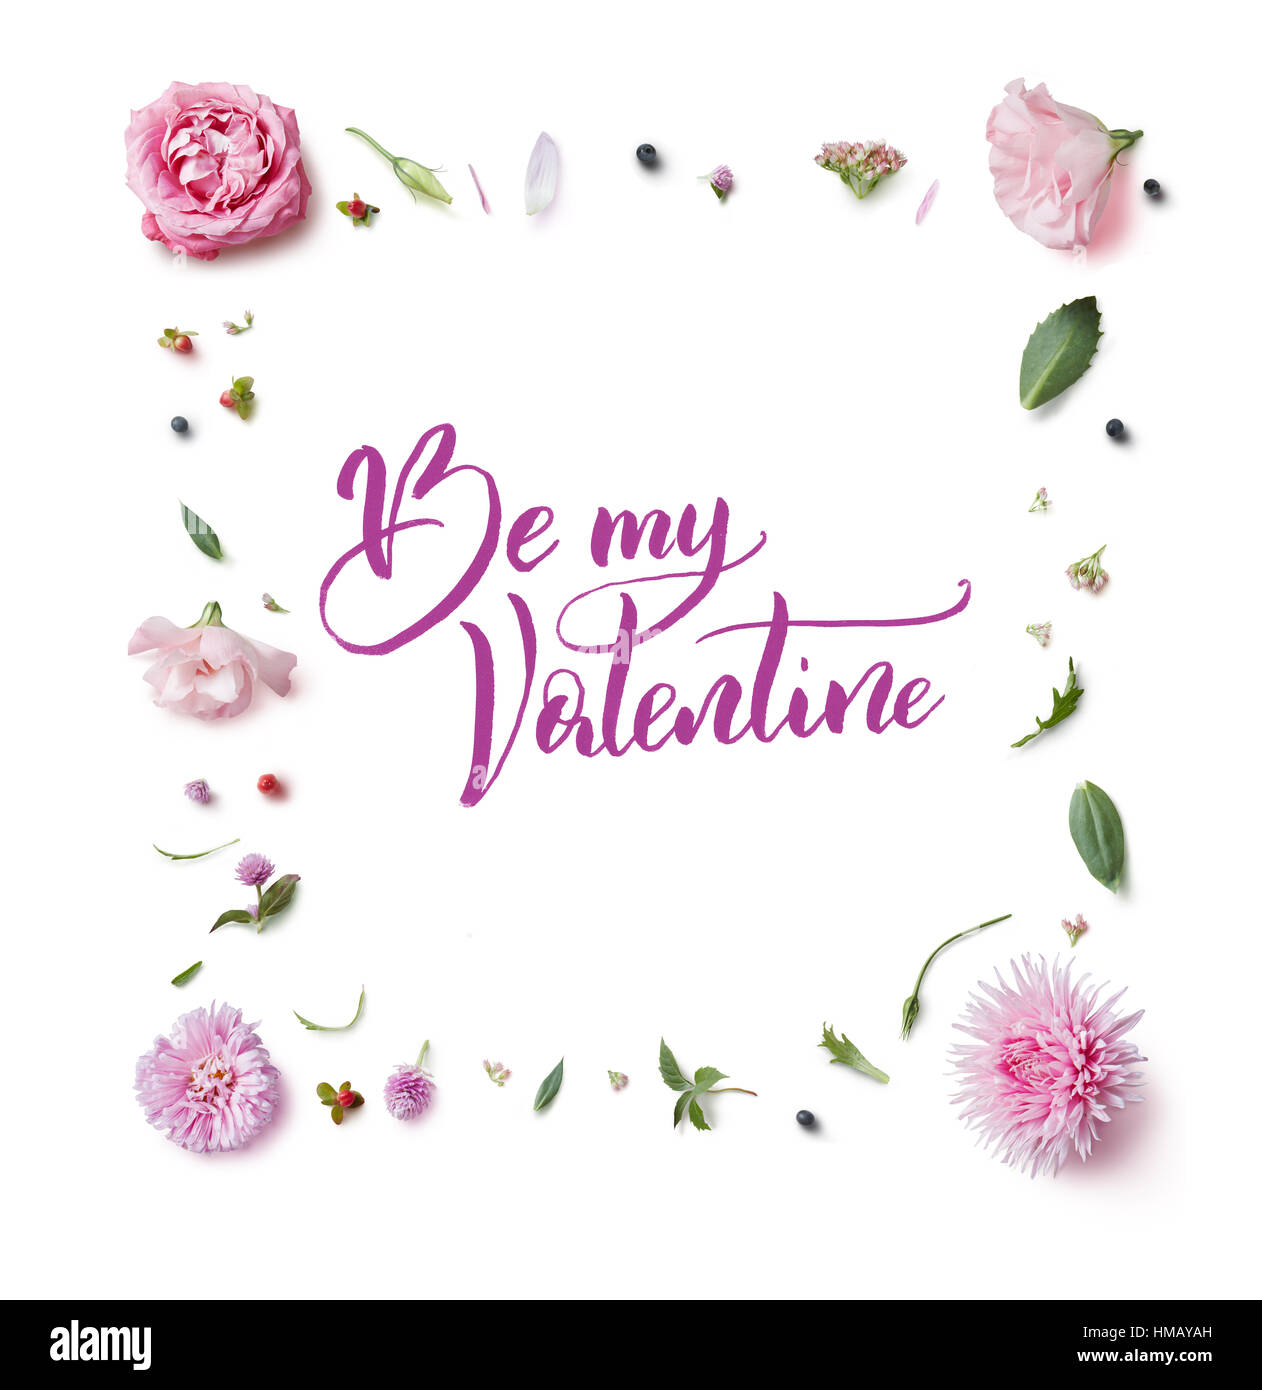 Greeting card with flowers frame and the words calligraphy be my greeting card with flowers frame and the words calligraphy be my valentines m4hsunfo